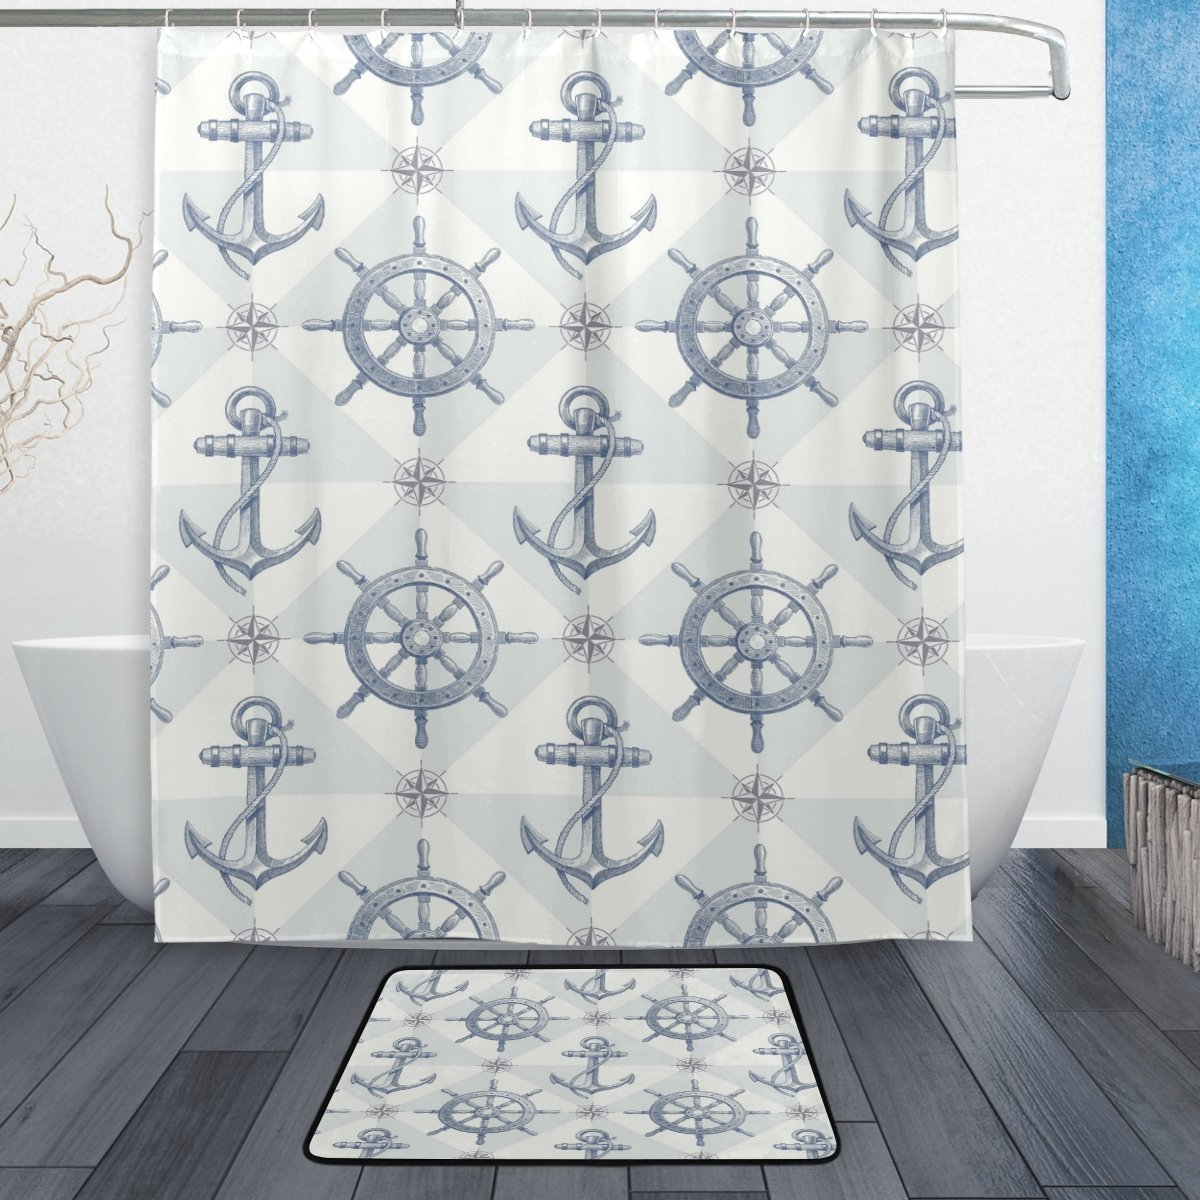 Garden Curtains Nautical Anchor Beach Ocean Starfish